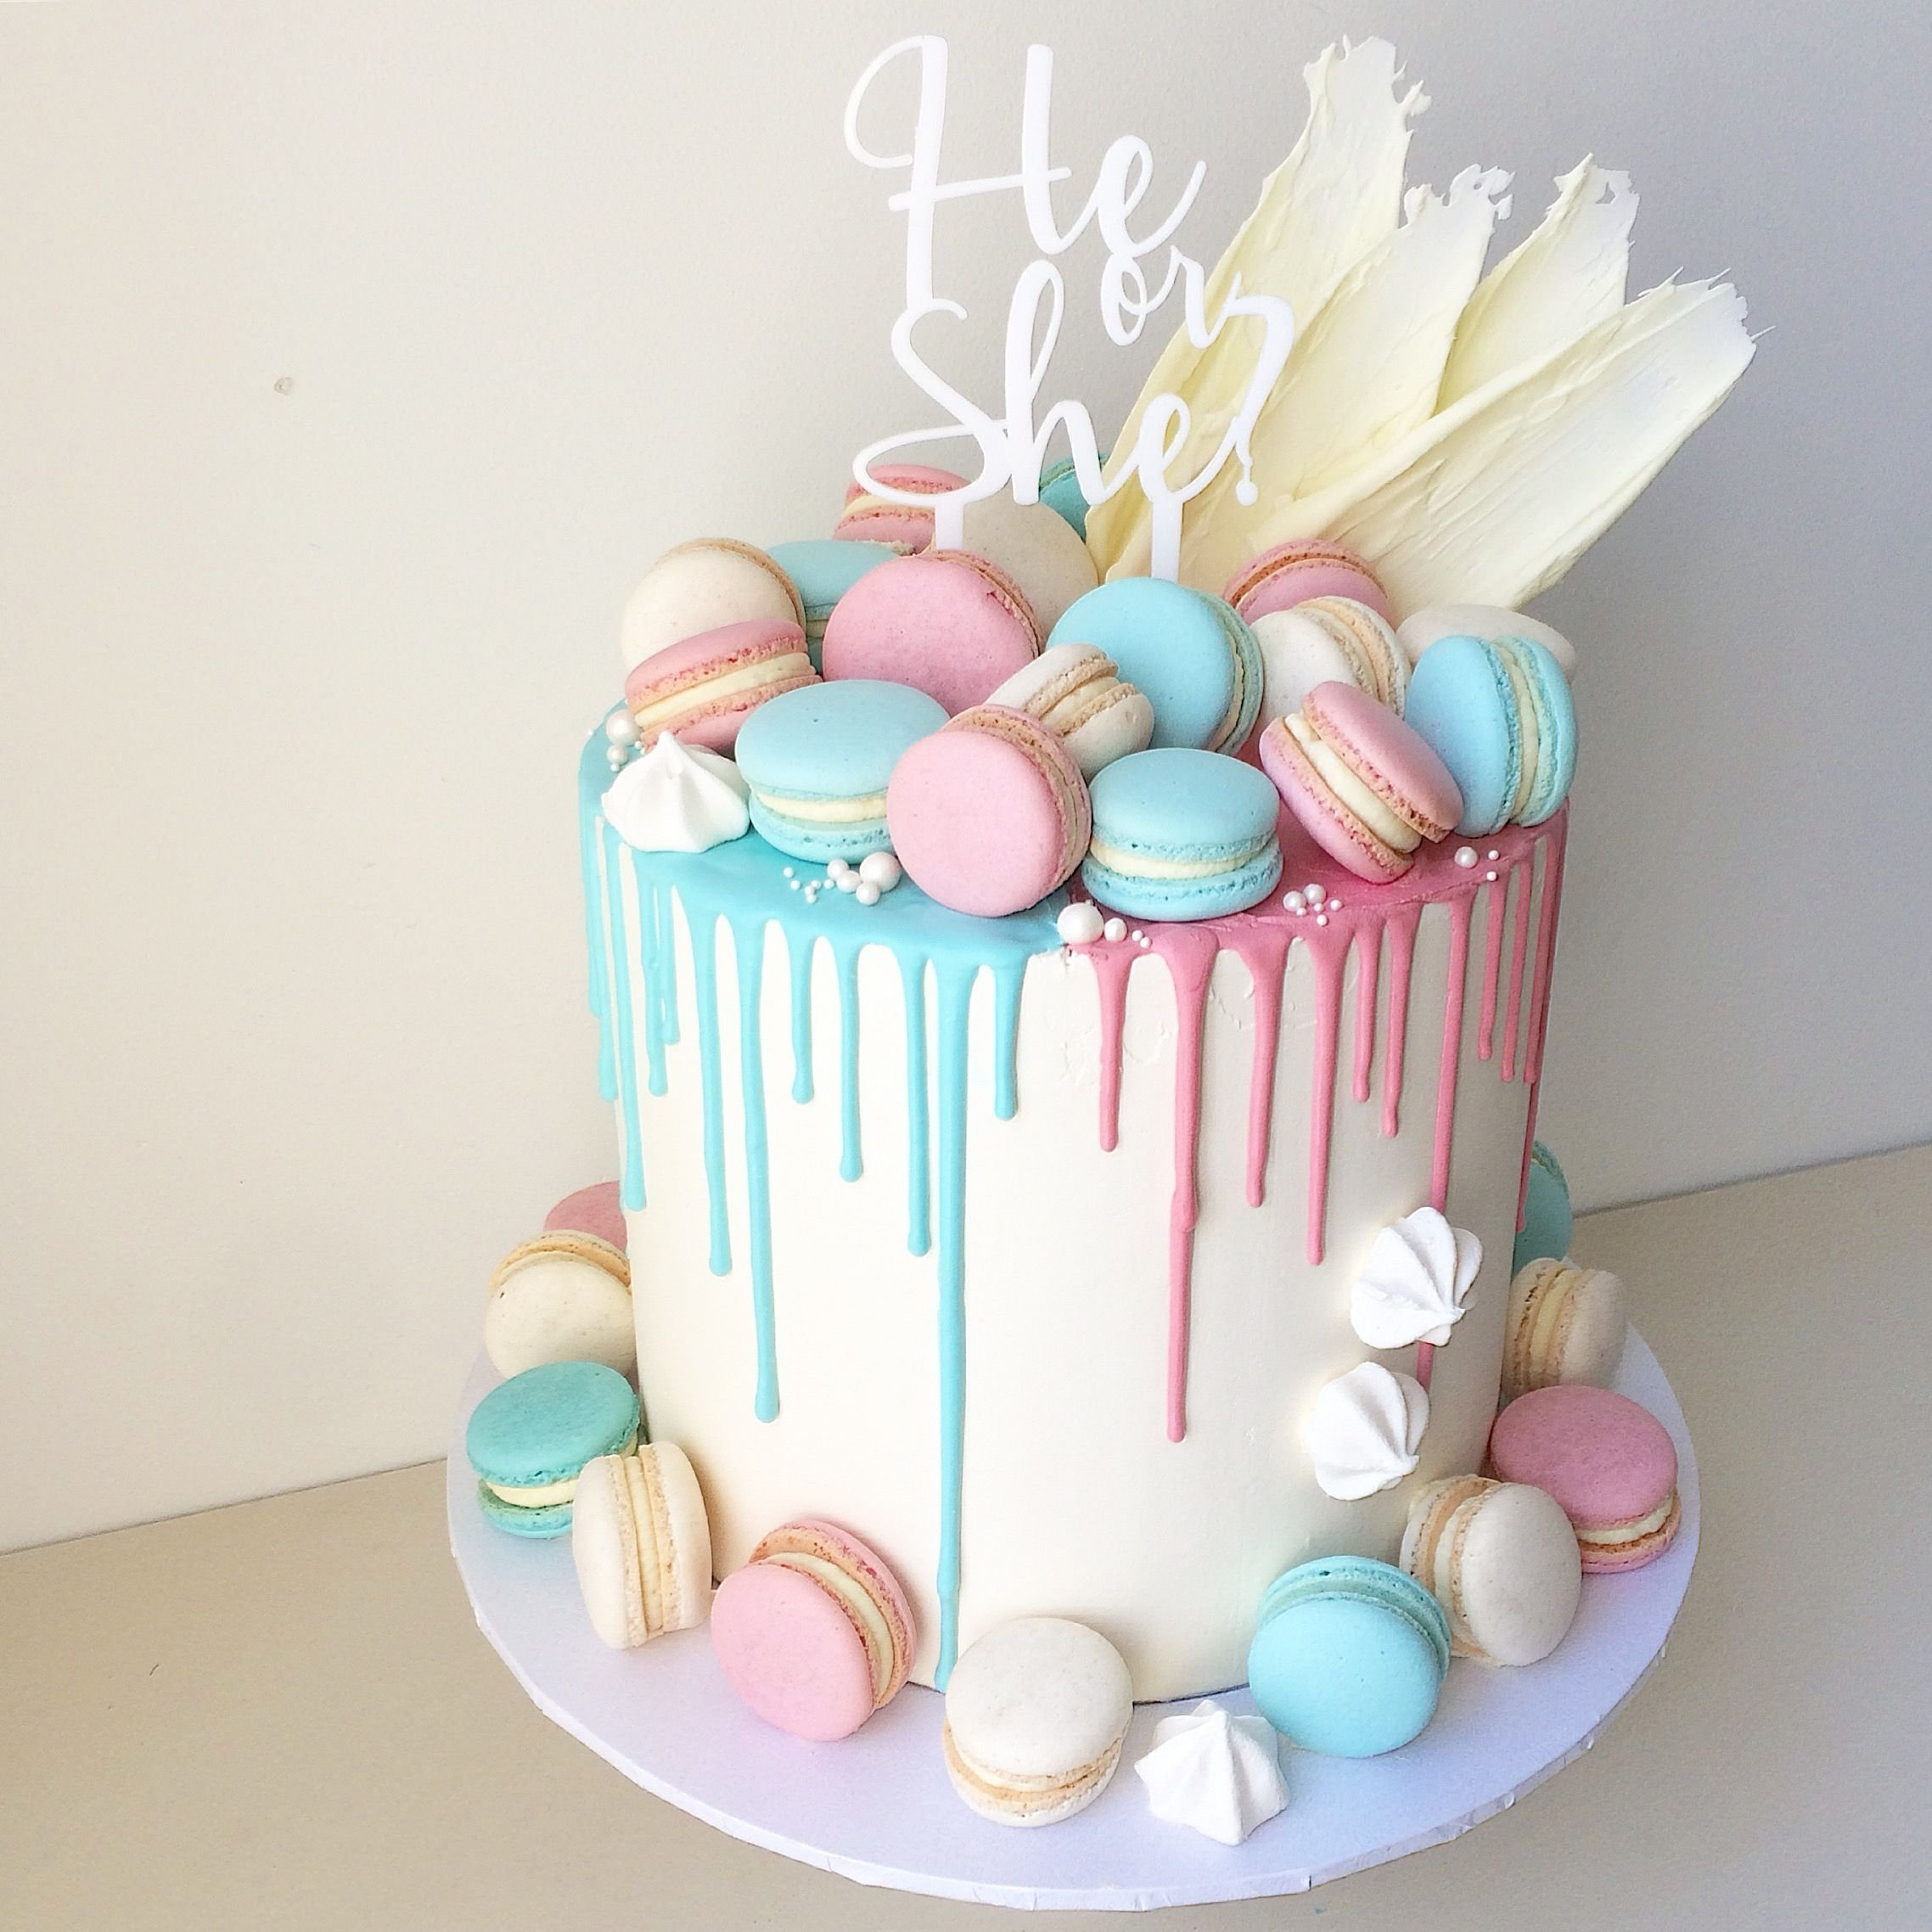 10 Beautiful Baby Gender Reveal Cake Ideas sister i am so happy your a baker lol i cant wait until you make 2020